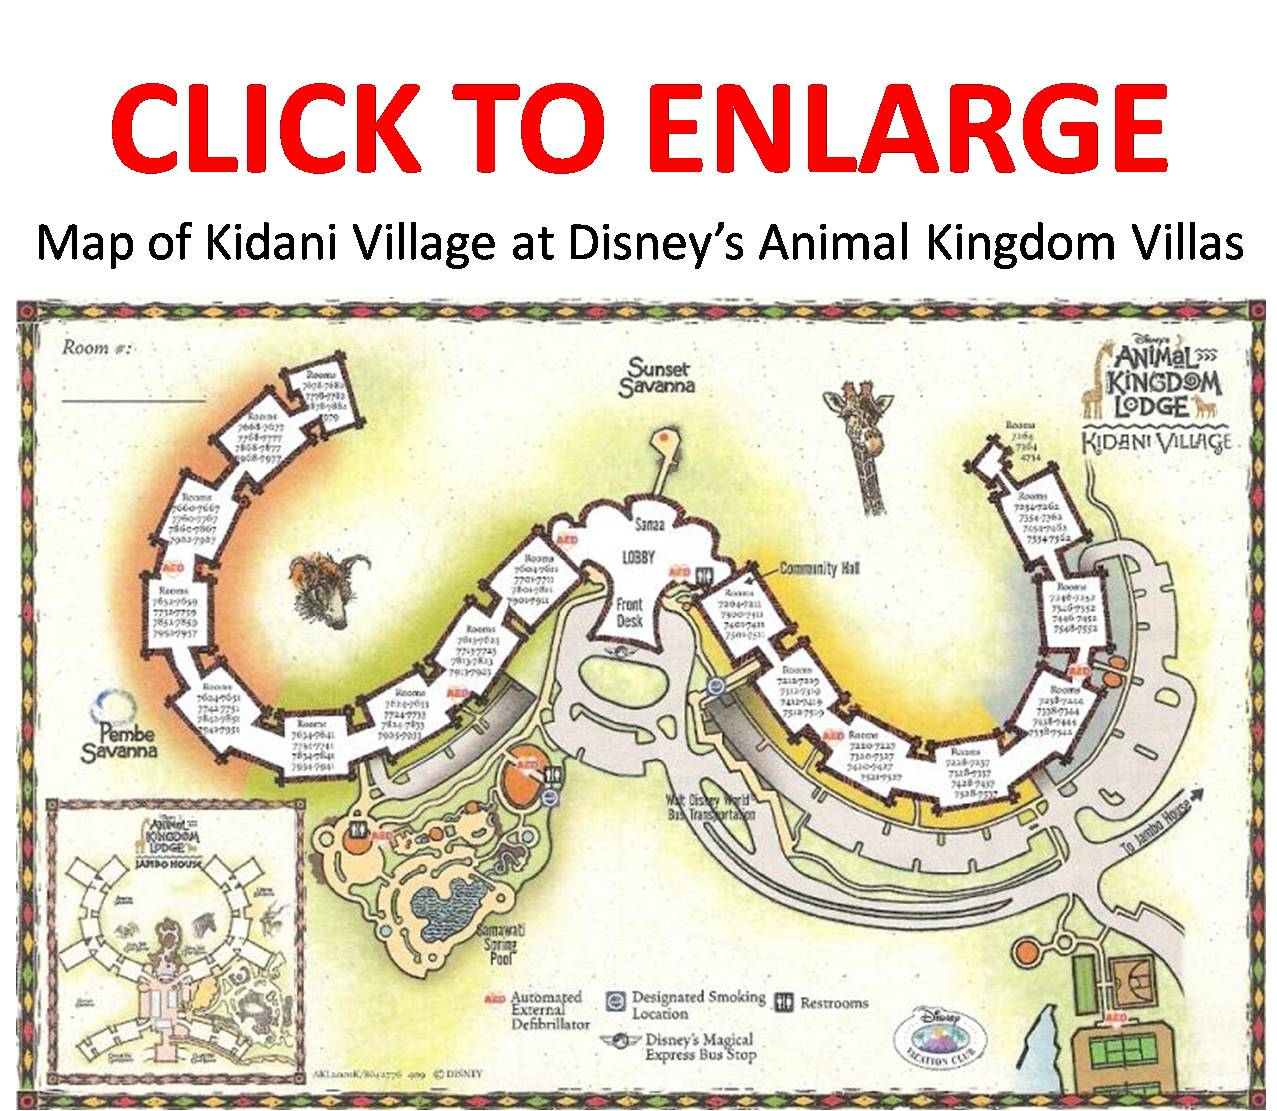 Kidani Village 2 Bedroom Villa Floor Plan Sake S Alive Akl Lite V The Dis Disney Discussion